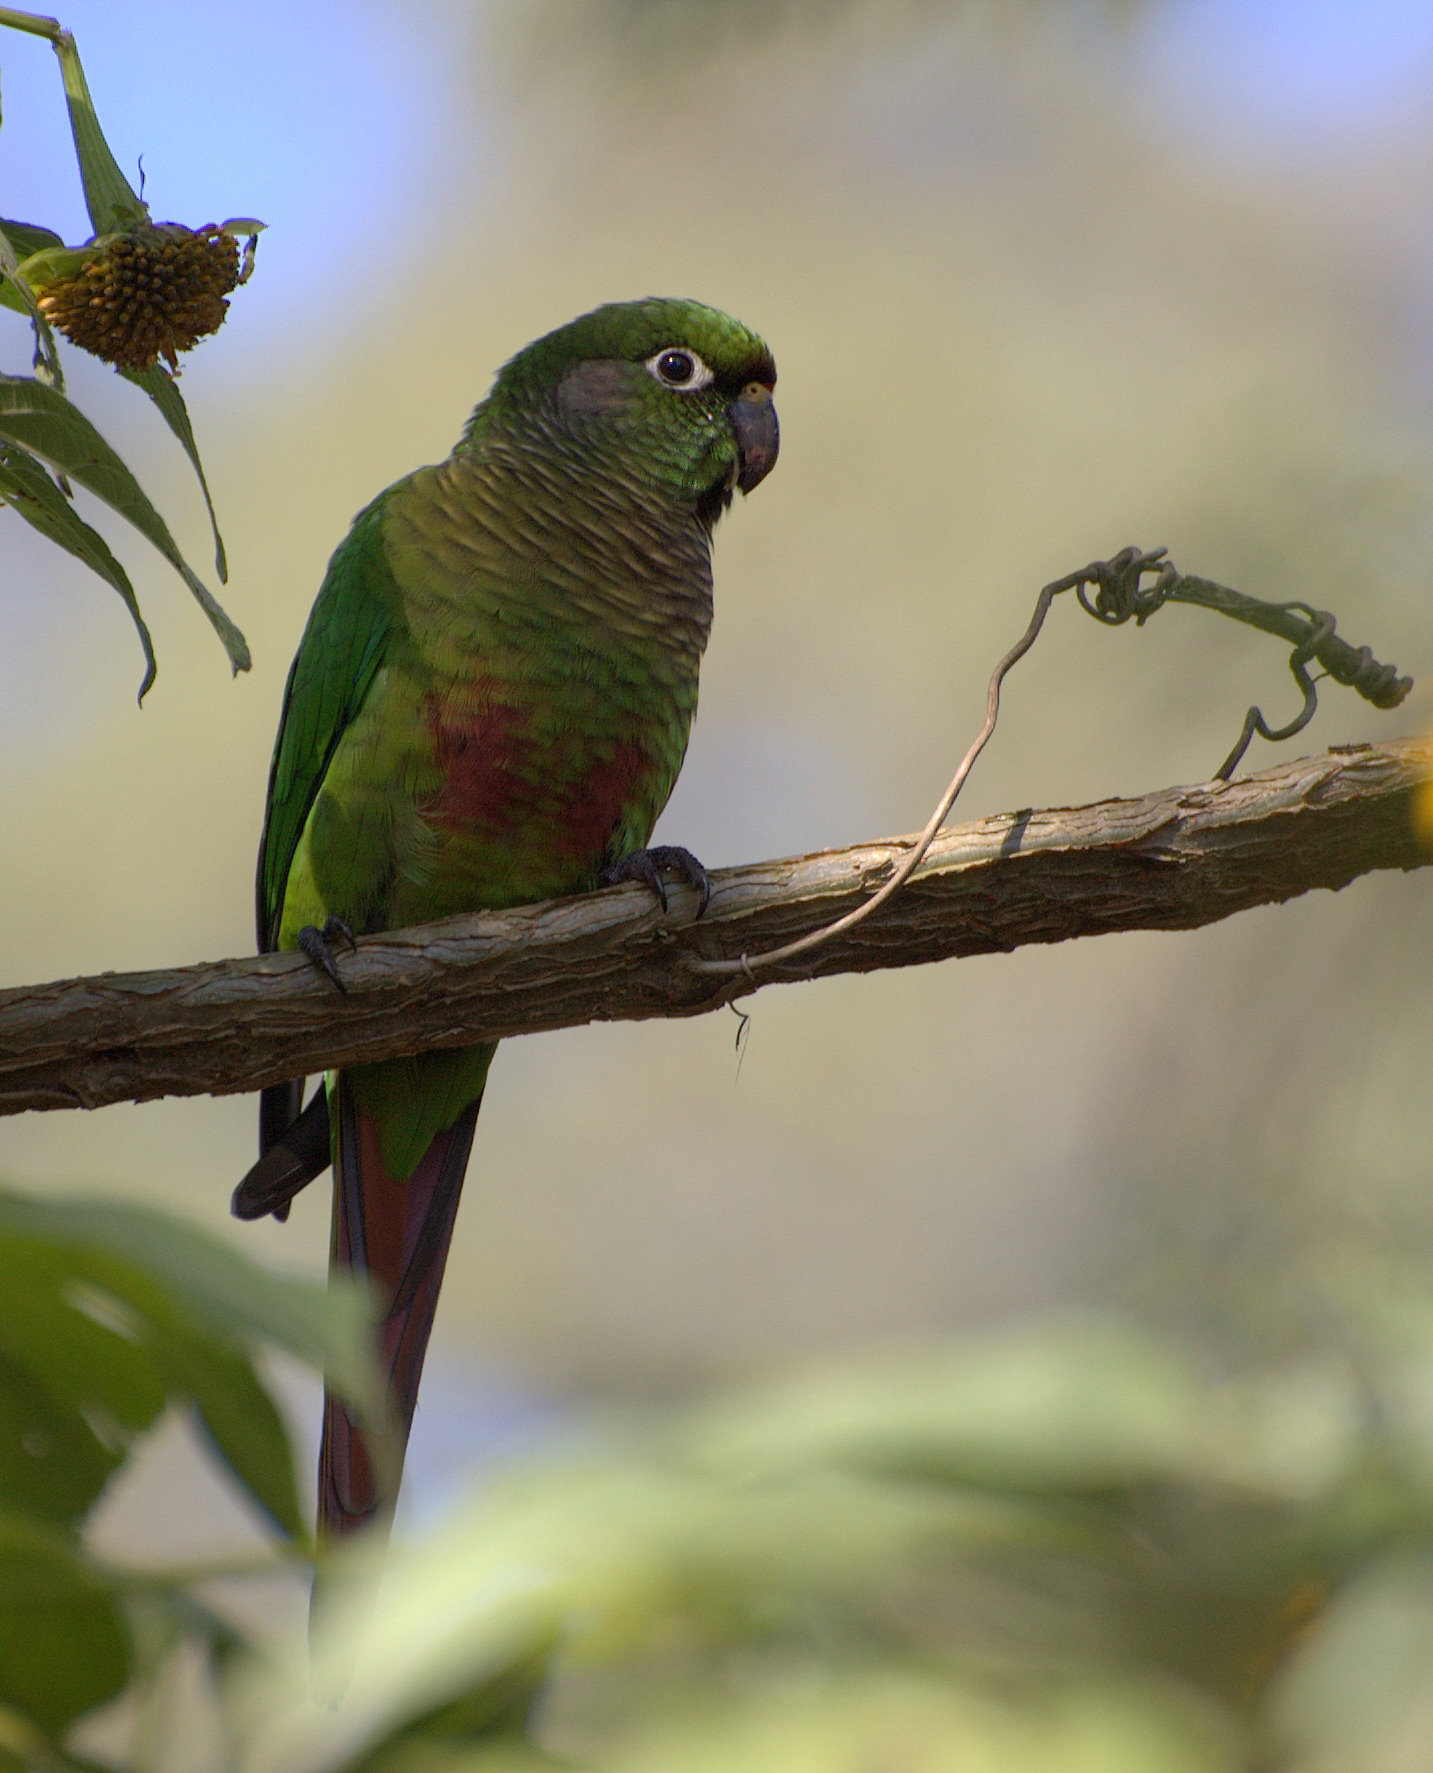 Reddish-bellied Parakeet wallpaper